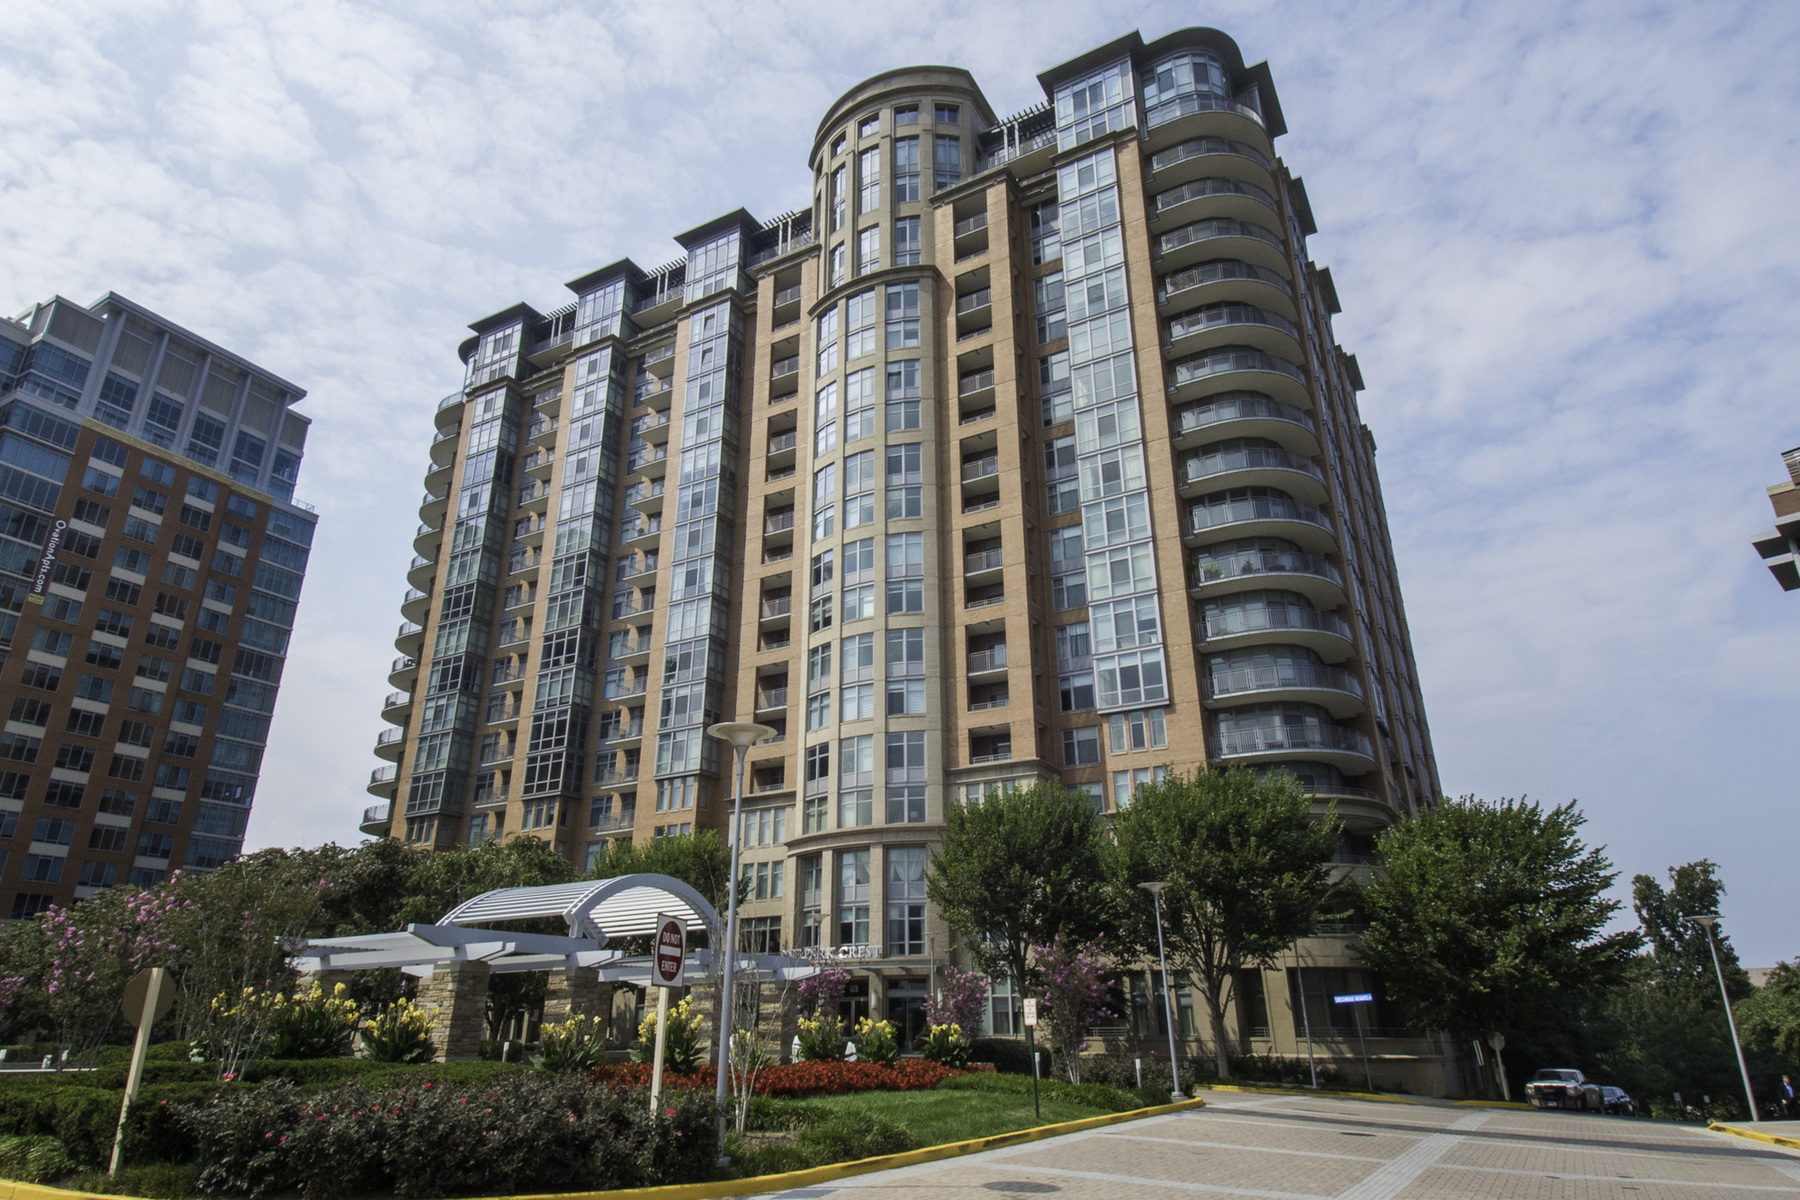 Condominium for Sale at Tysons Corner 8220 Crestwood Heights Dr 813 McLean, Virginia 22102 United States